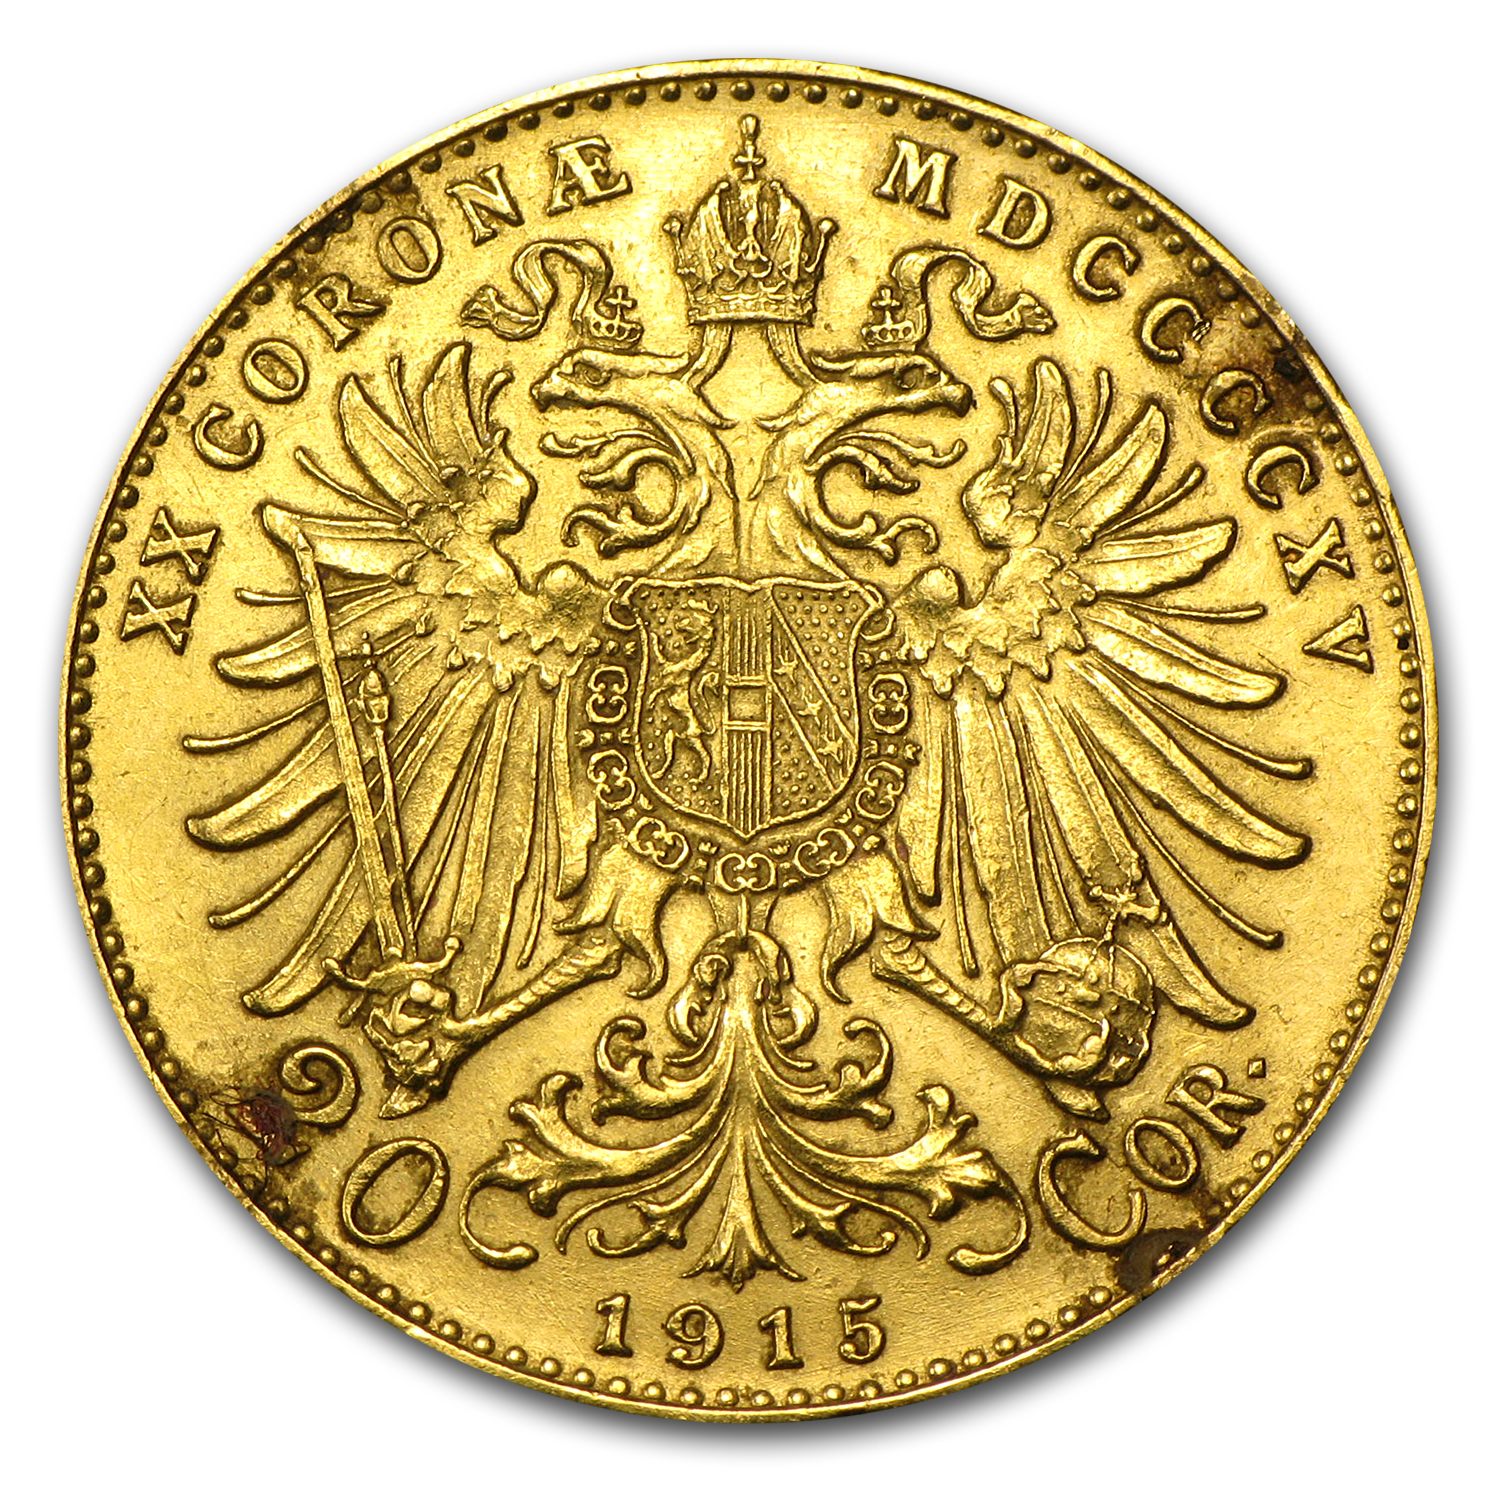 1915 Austria Gold 20 Coronas (Restrikes, Well worn)